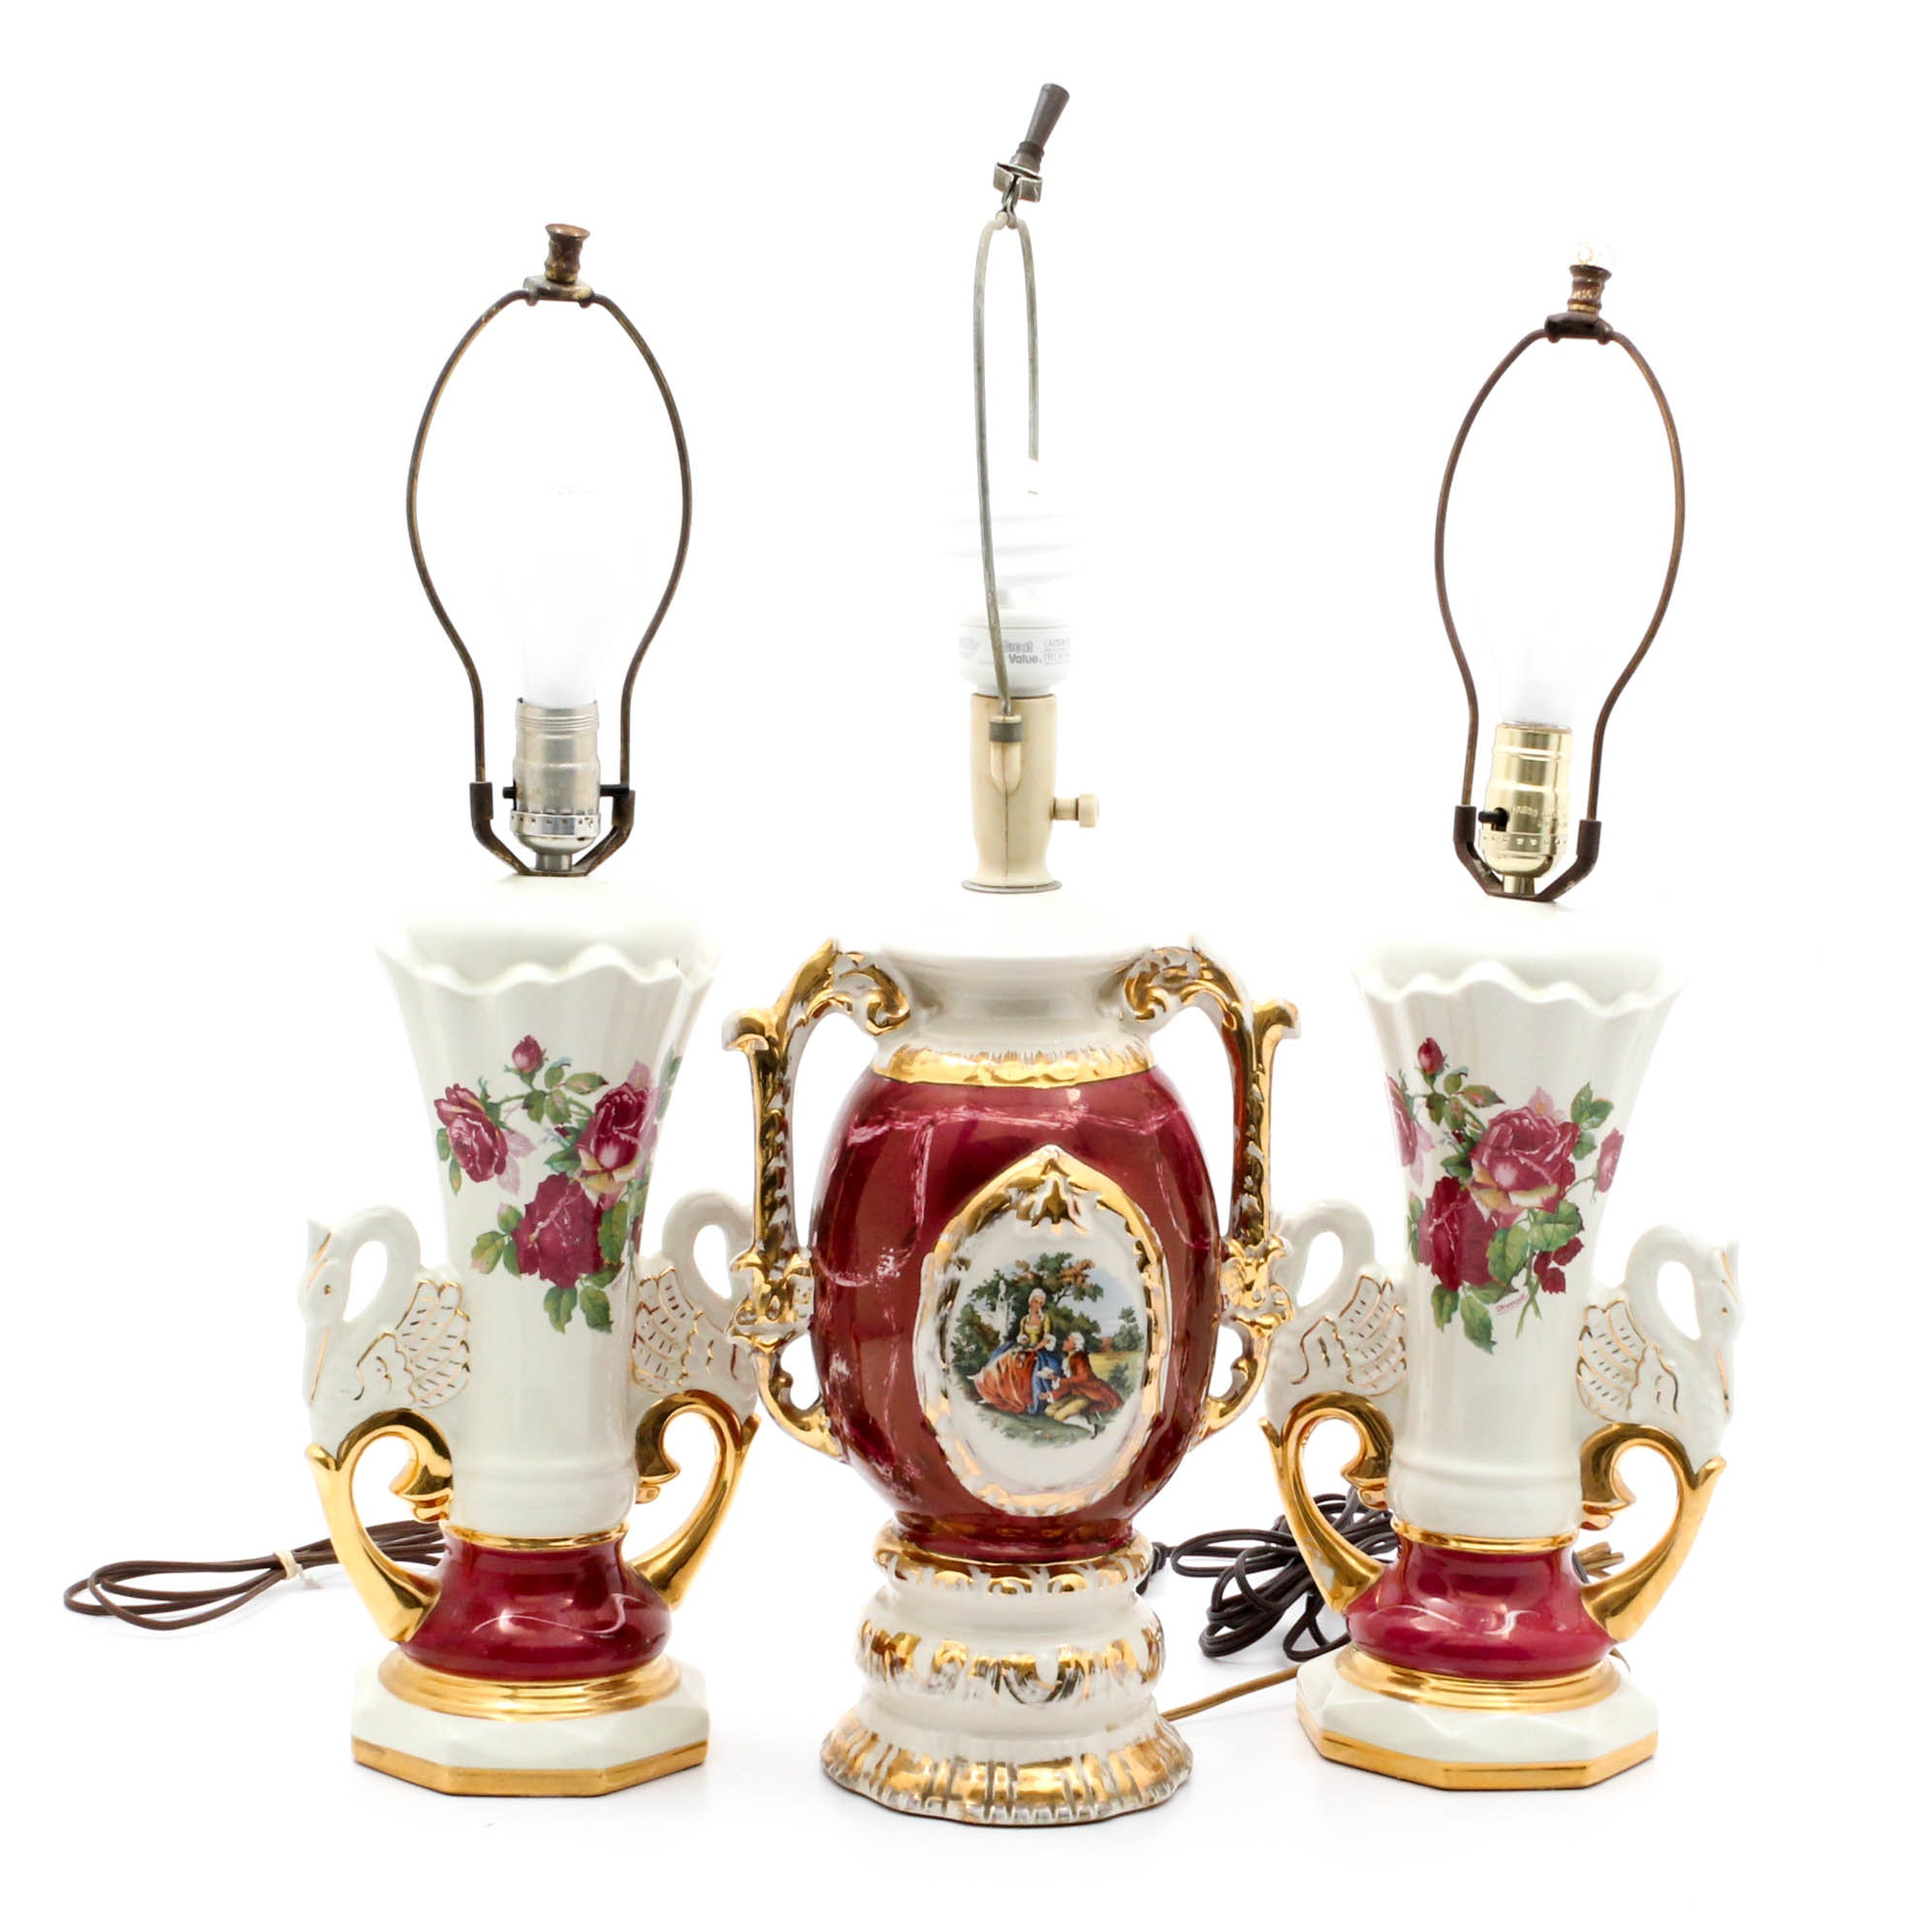 Sevres Style Porcelain Lamp with Transfer Print Roses Lamps